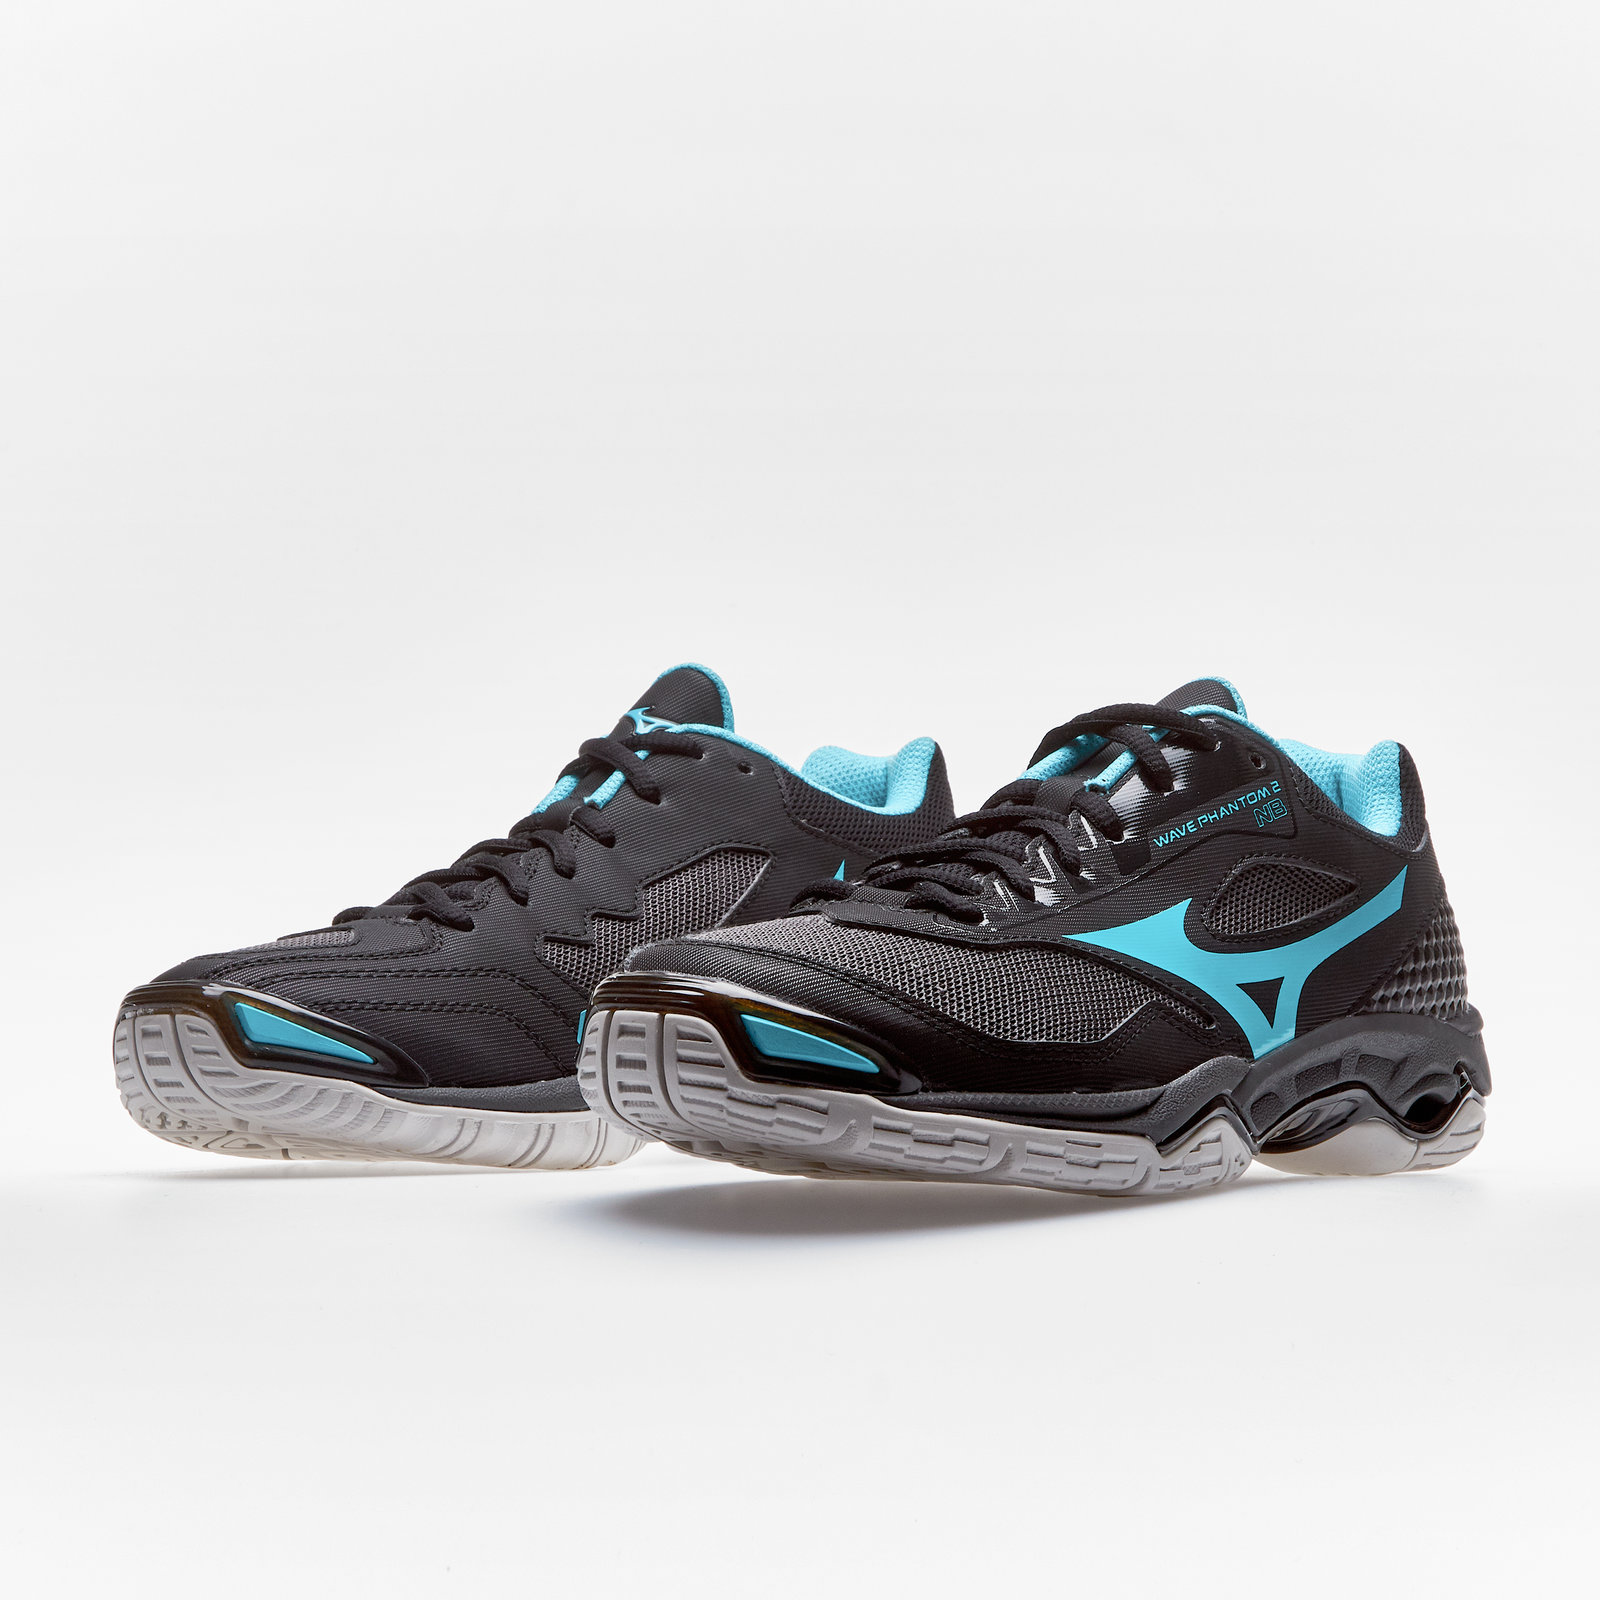 0c490bb740704 Details about Mizuno Womens Wave Phantom 2 Netball Trainers Sports Shoes  Black